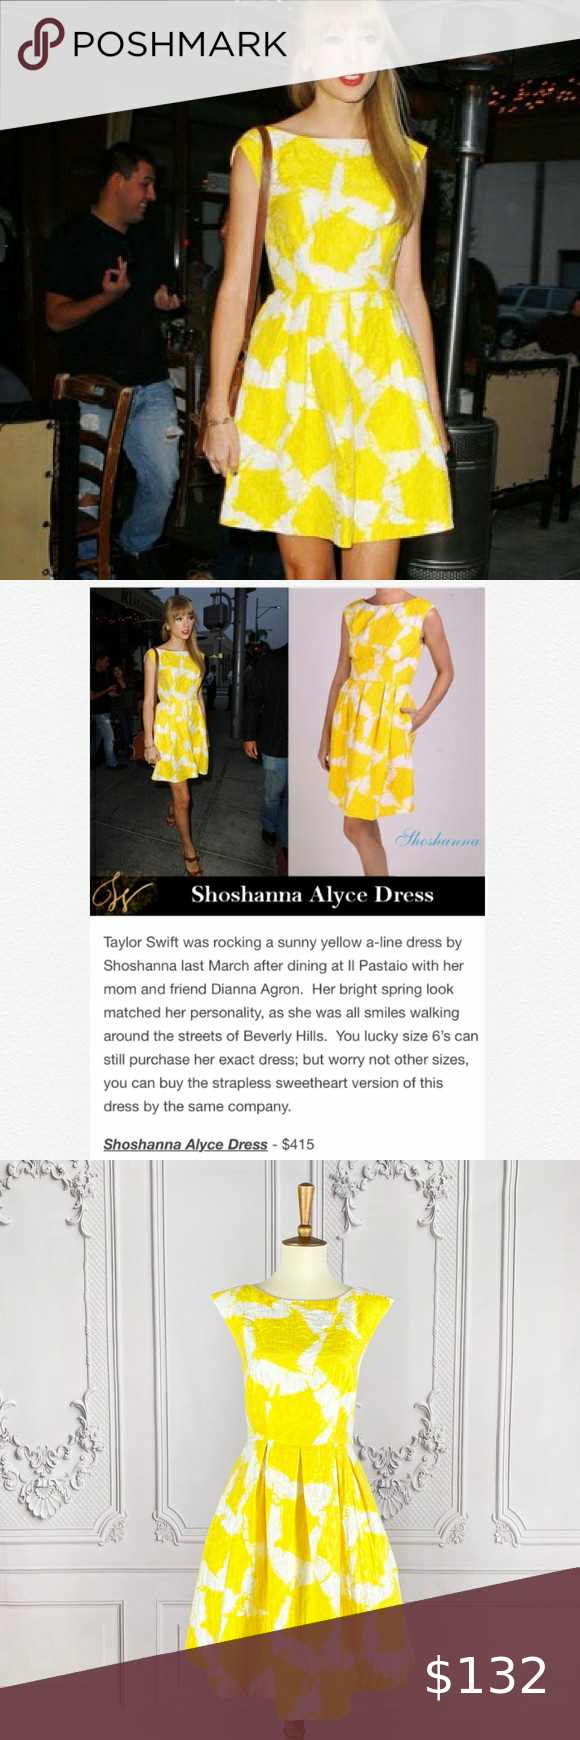 Shoshanna Rare Alyce Dress In Yellow Alyce Dress Clothes Design Dresses [ 1740 x 580 Pixel ]